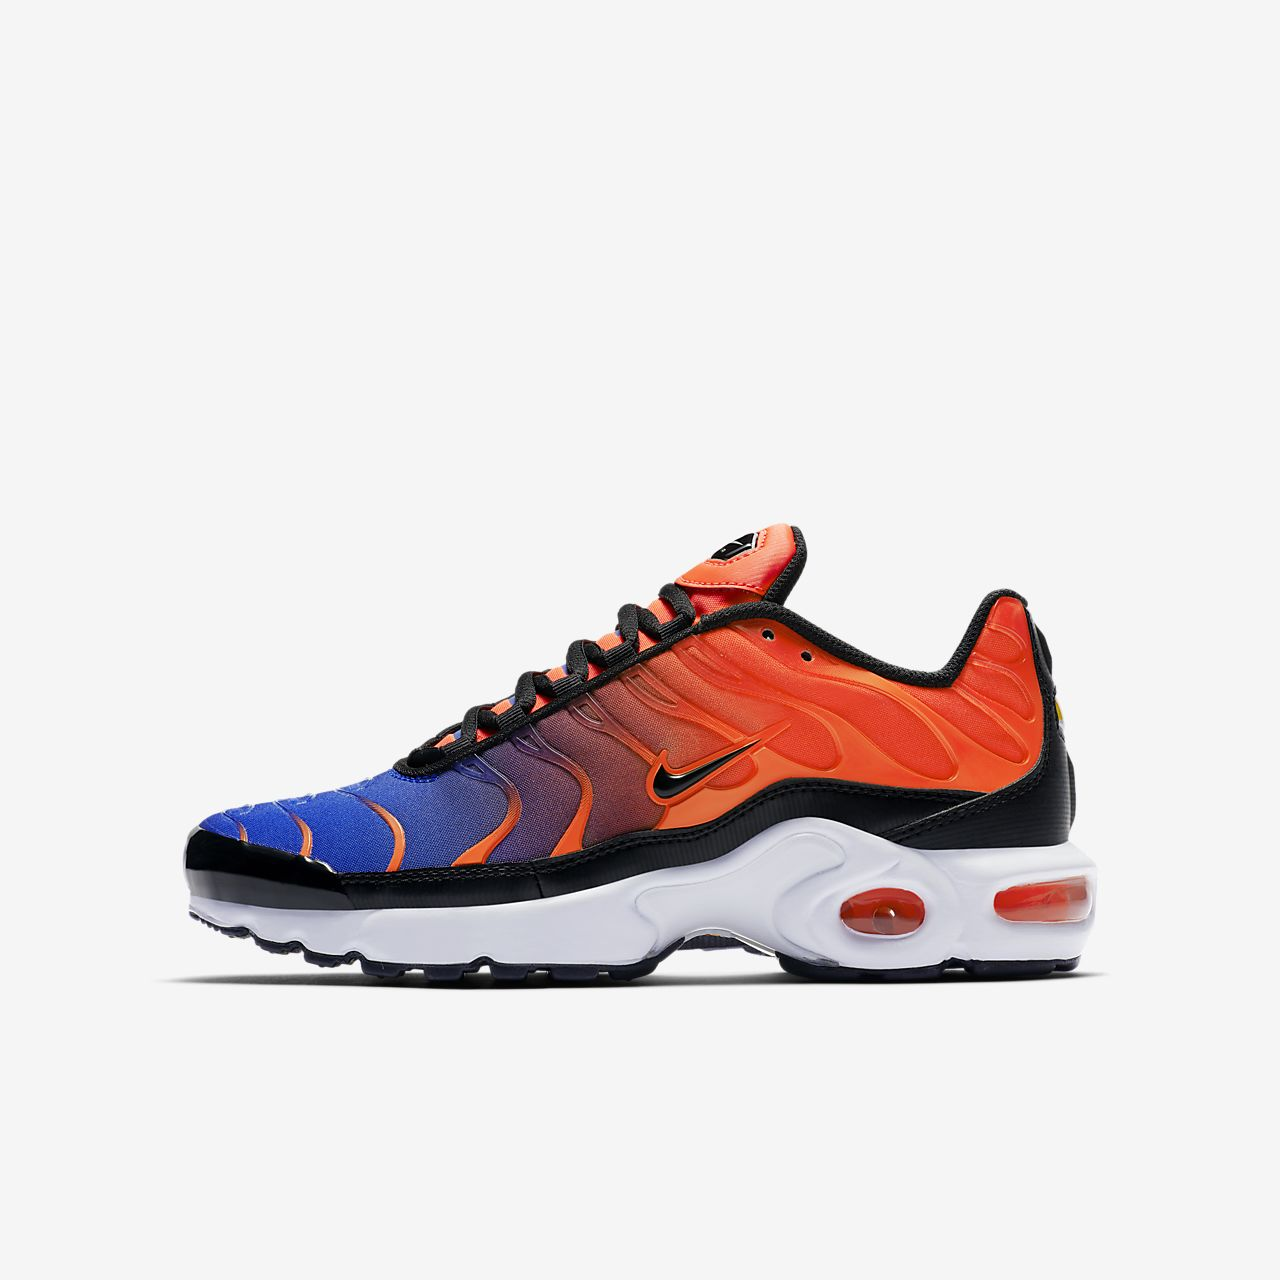 nike air max plus tn se herrenschuh schwarz